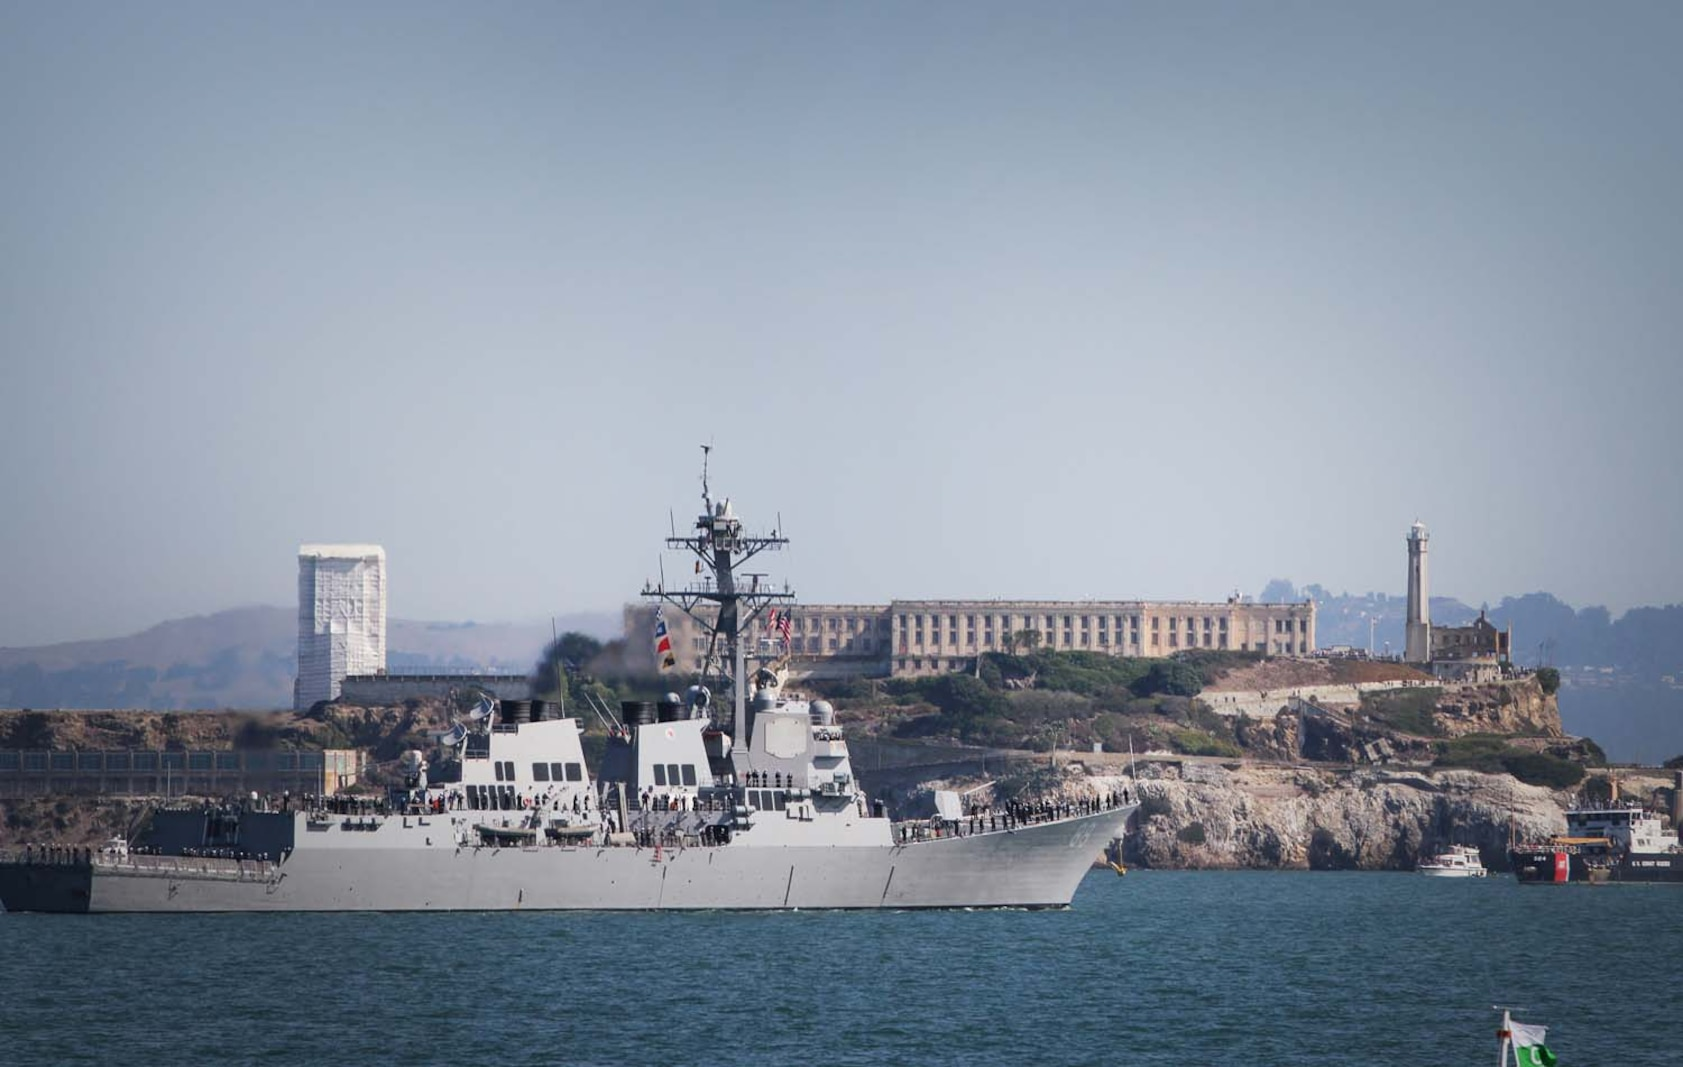 The U.S. Navy's USS Preble, an Arleigh Burke-class destroyer, cruises through the San Francisco Bay past Alcatraz Island, Oct. 6, 2012, during San Francisco Fleet Week 2012's Parade of Ships event. Nine sea vessels belonging to the U.S. Navy, Coast Guard, San Francisco Fire Department and the Canadian Navy entered the San Francisco Bay underneath the Golden Gate Bridge in a prestigious and ceremonial event – tradition to San Francisco Fleet Week.